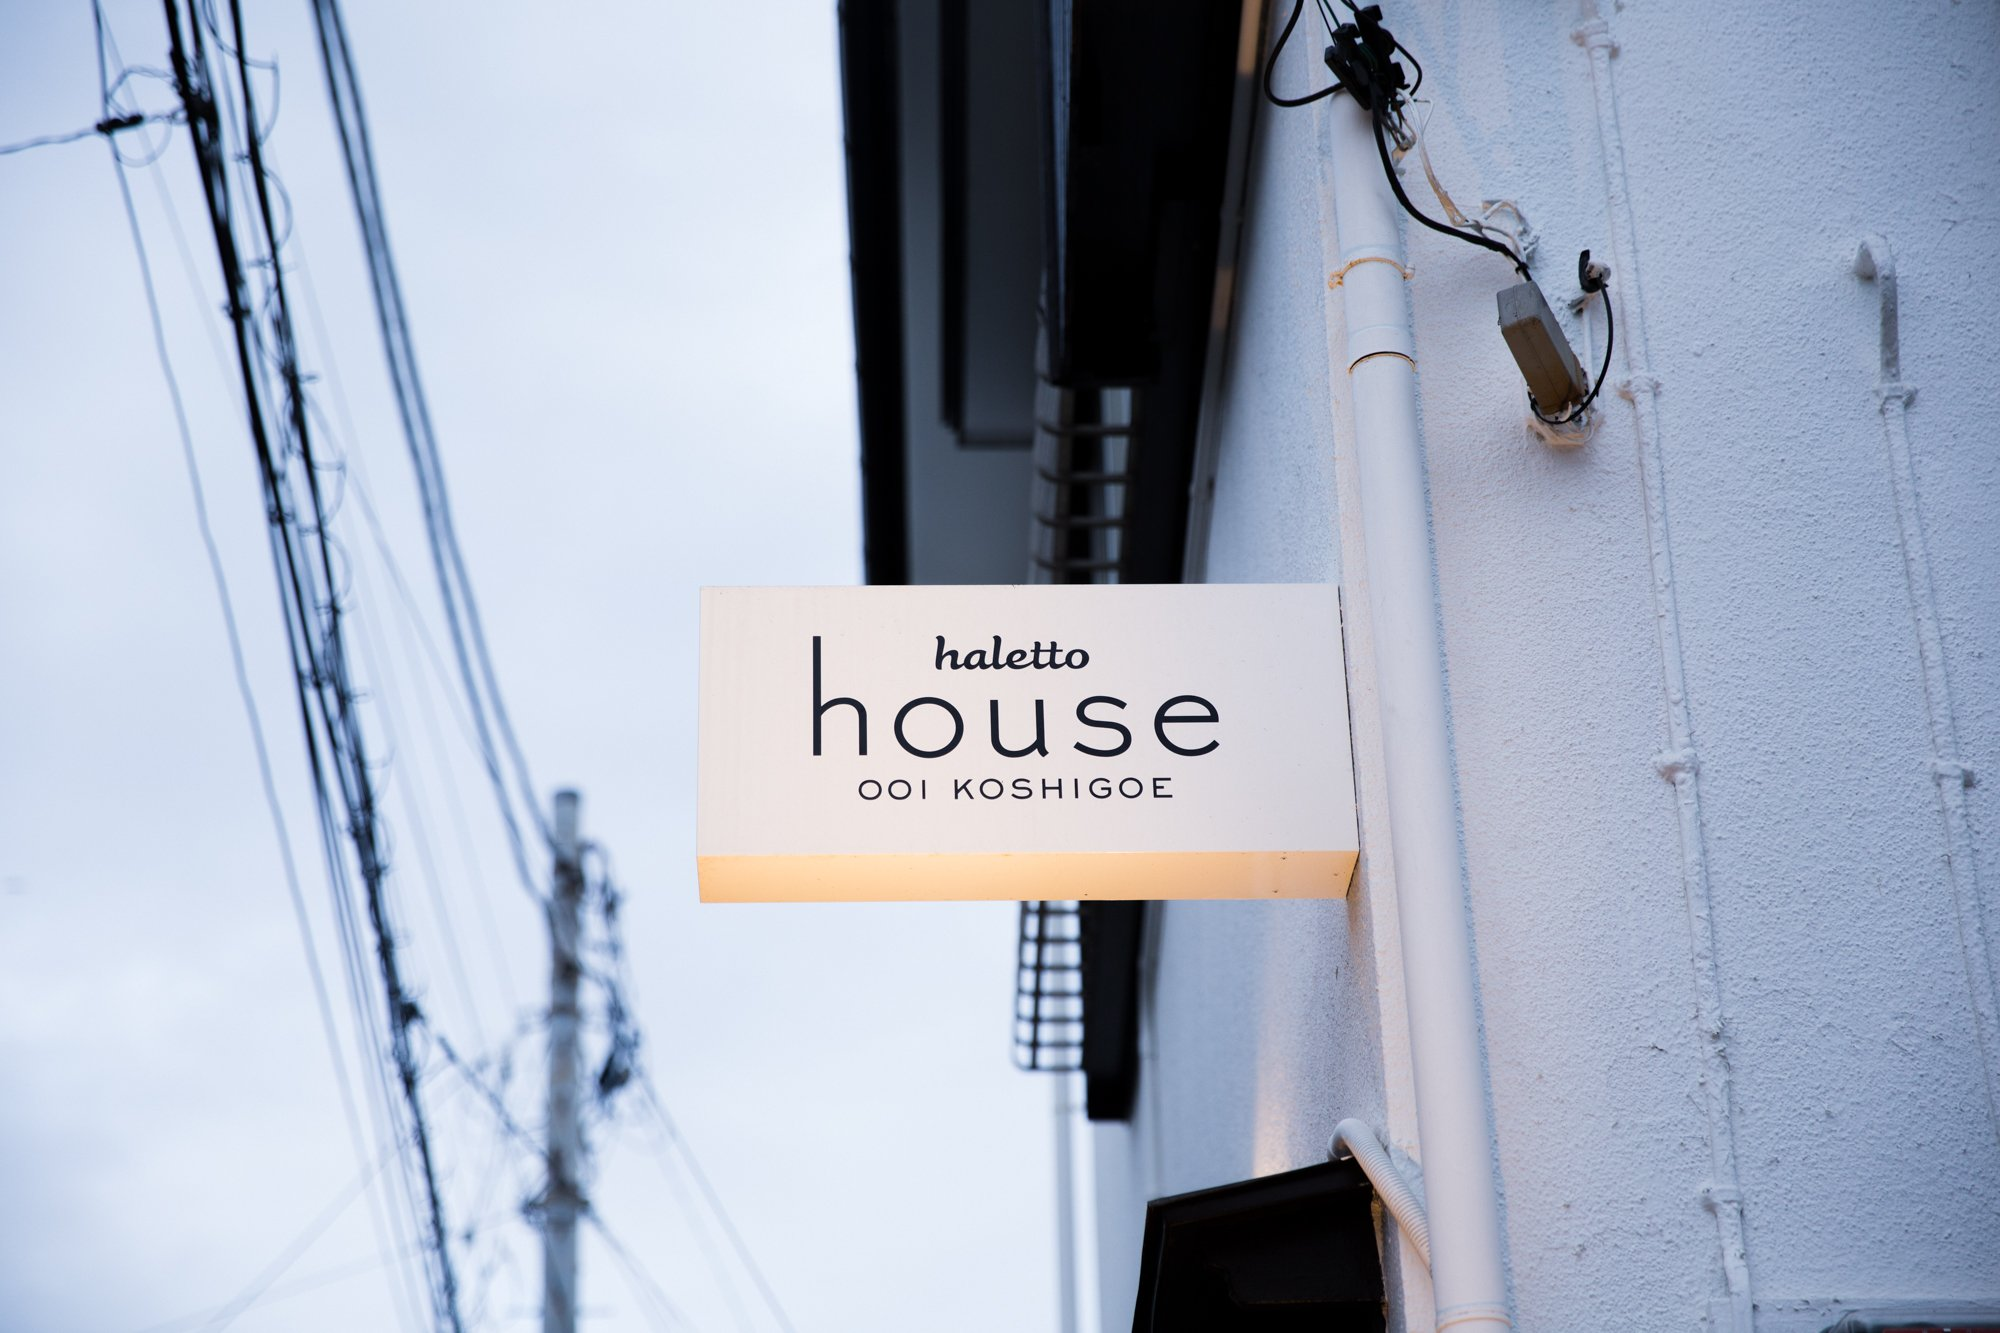 haletto house KOSHIGOEの看板